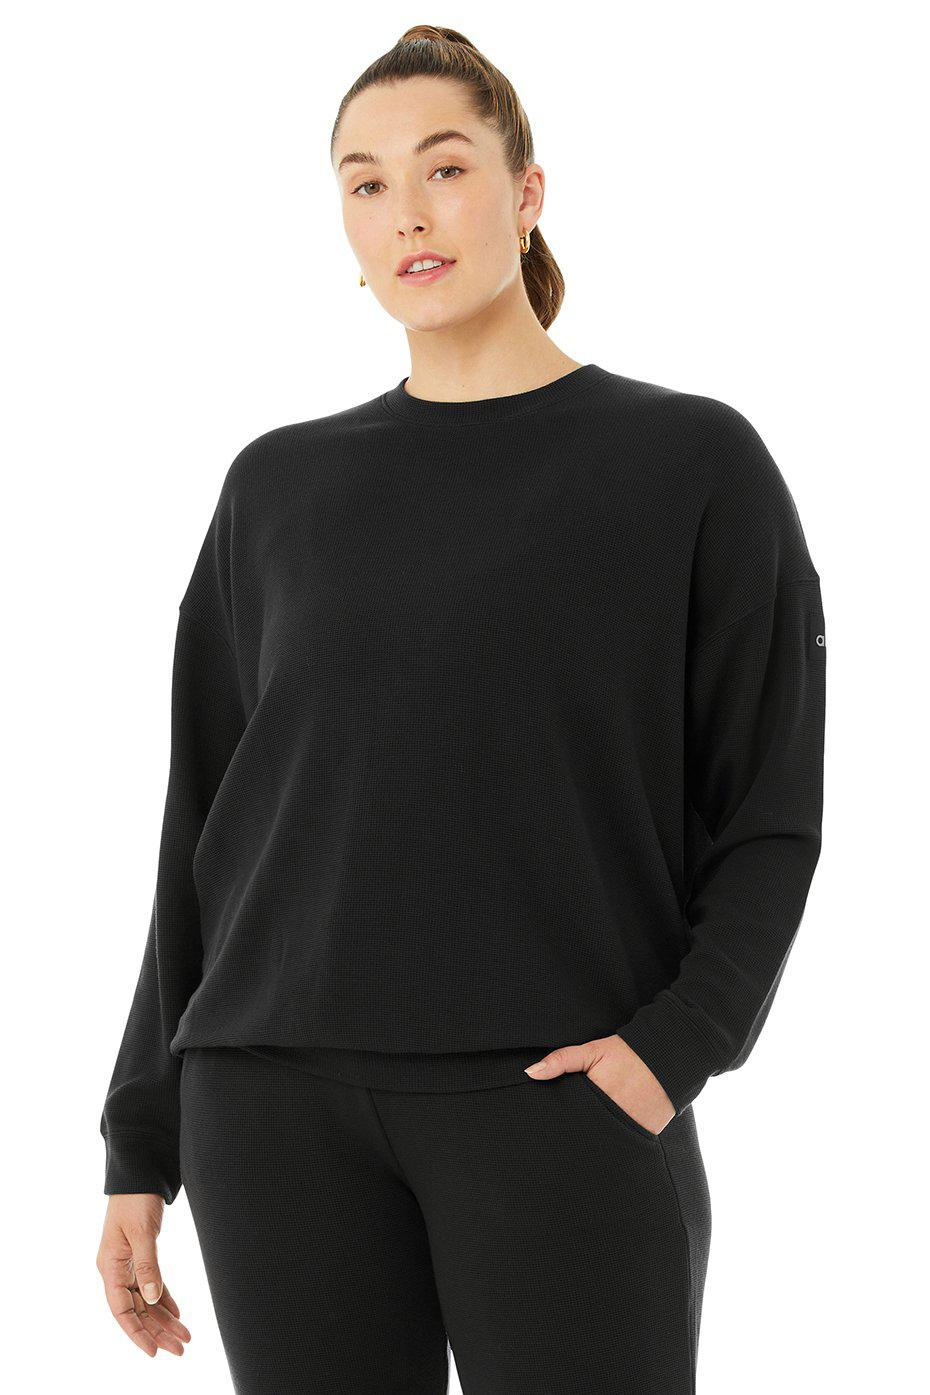 Micro Waffle Relaxation Pullover - Black 5